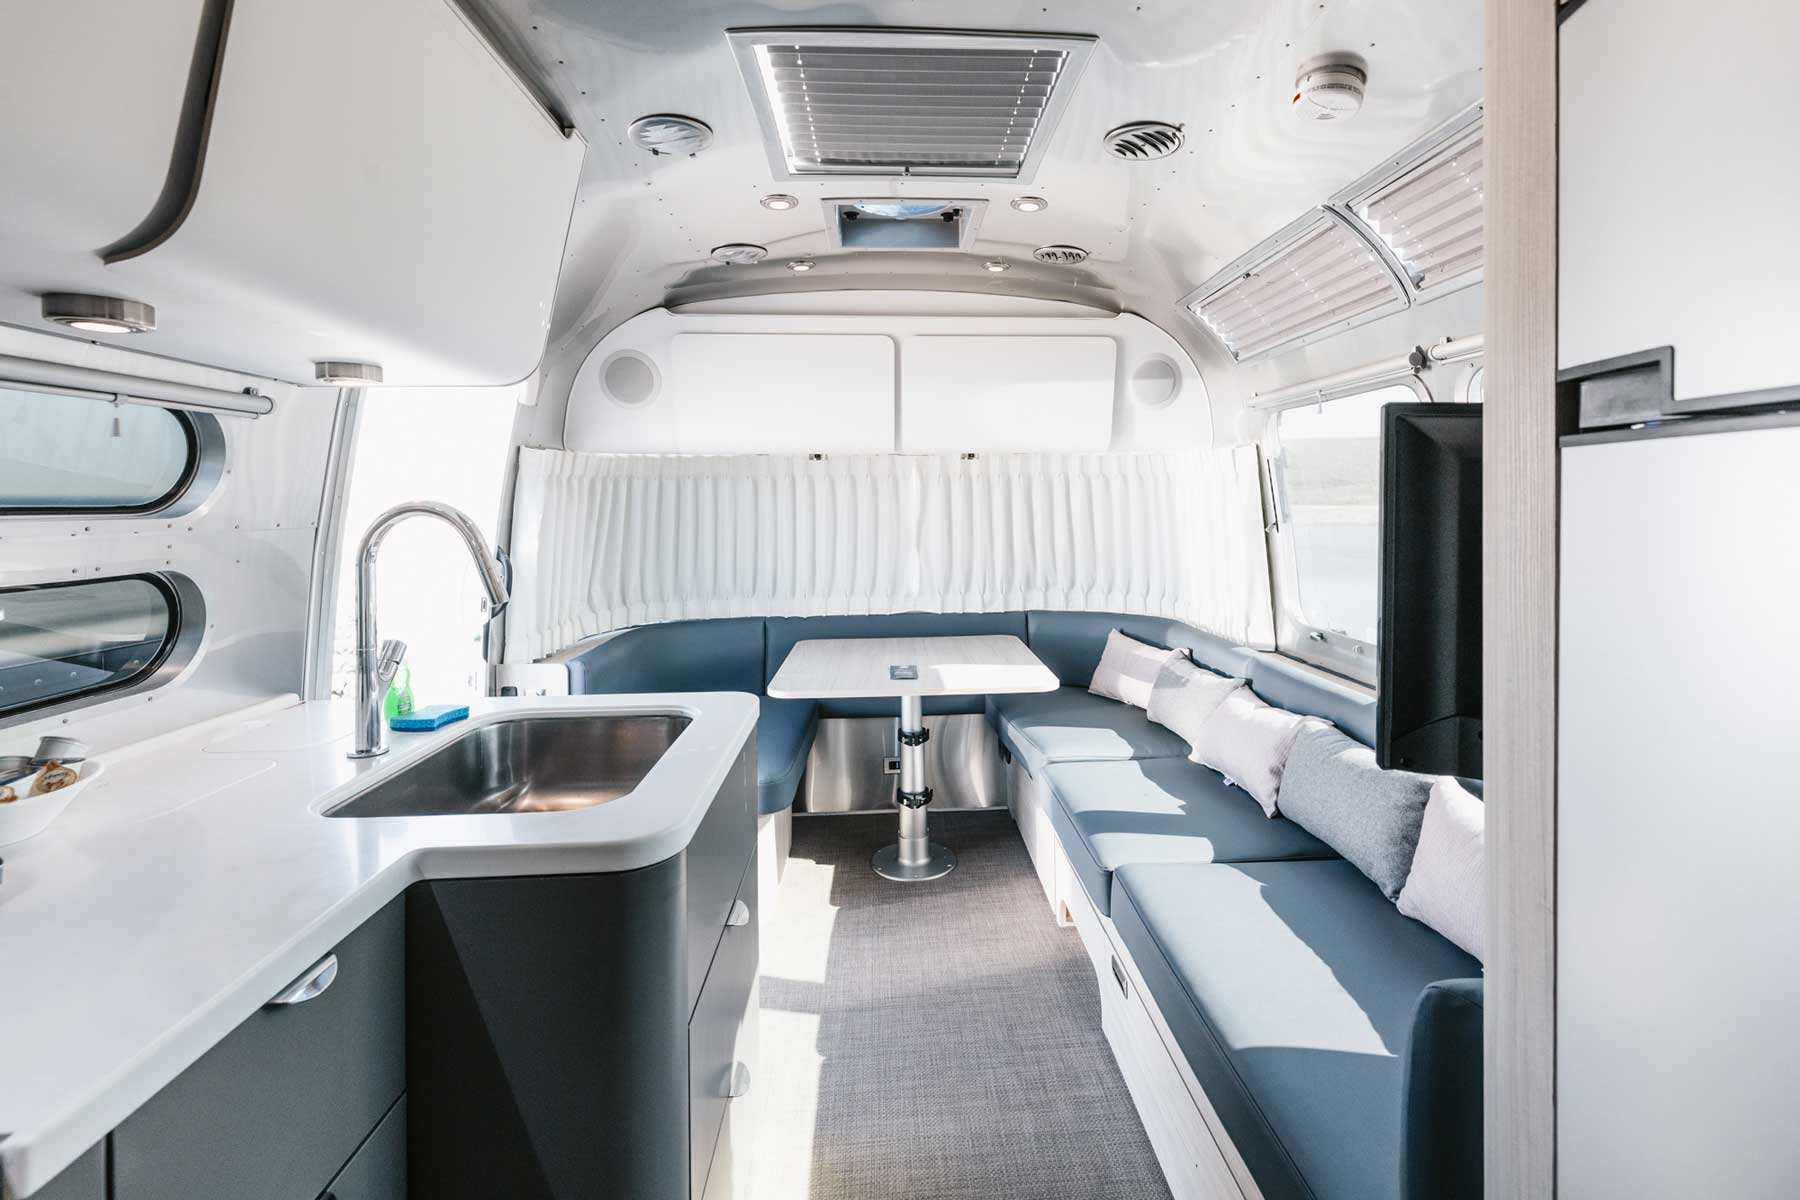 Interior of luxury airstream trailer